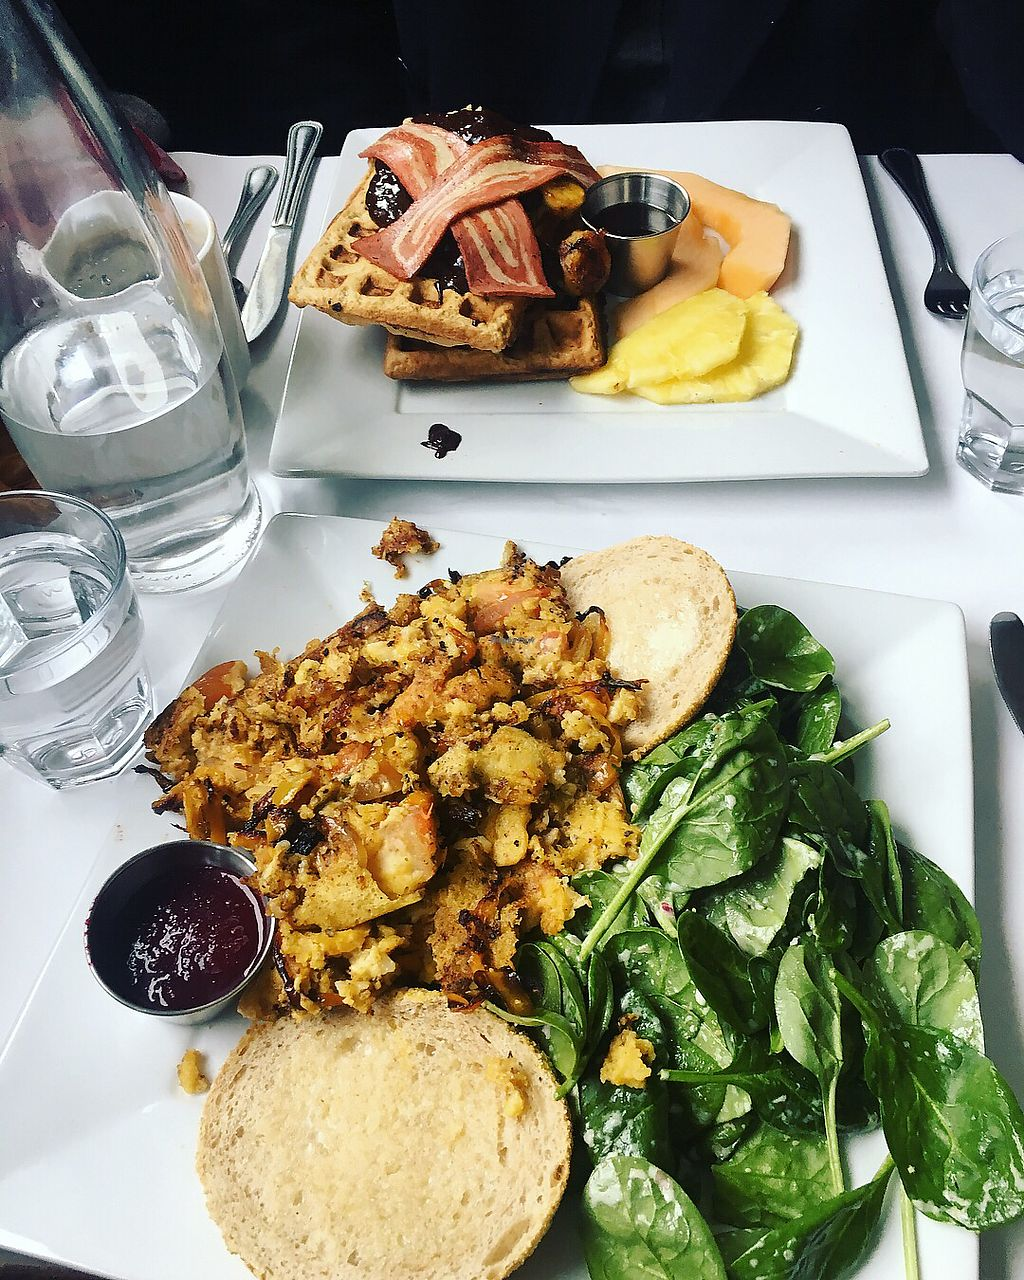 """Photo of Vegano  by <a href=""""/members/profile/mainelark"""">mainelark</a> <br/>The omelet and chocolate banana waffles  <br/> December 9, 2017  - <a href='/contact/abuse/image/84140/333826'>Report</a>"""